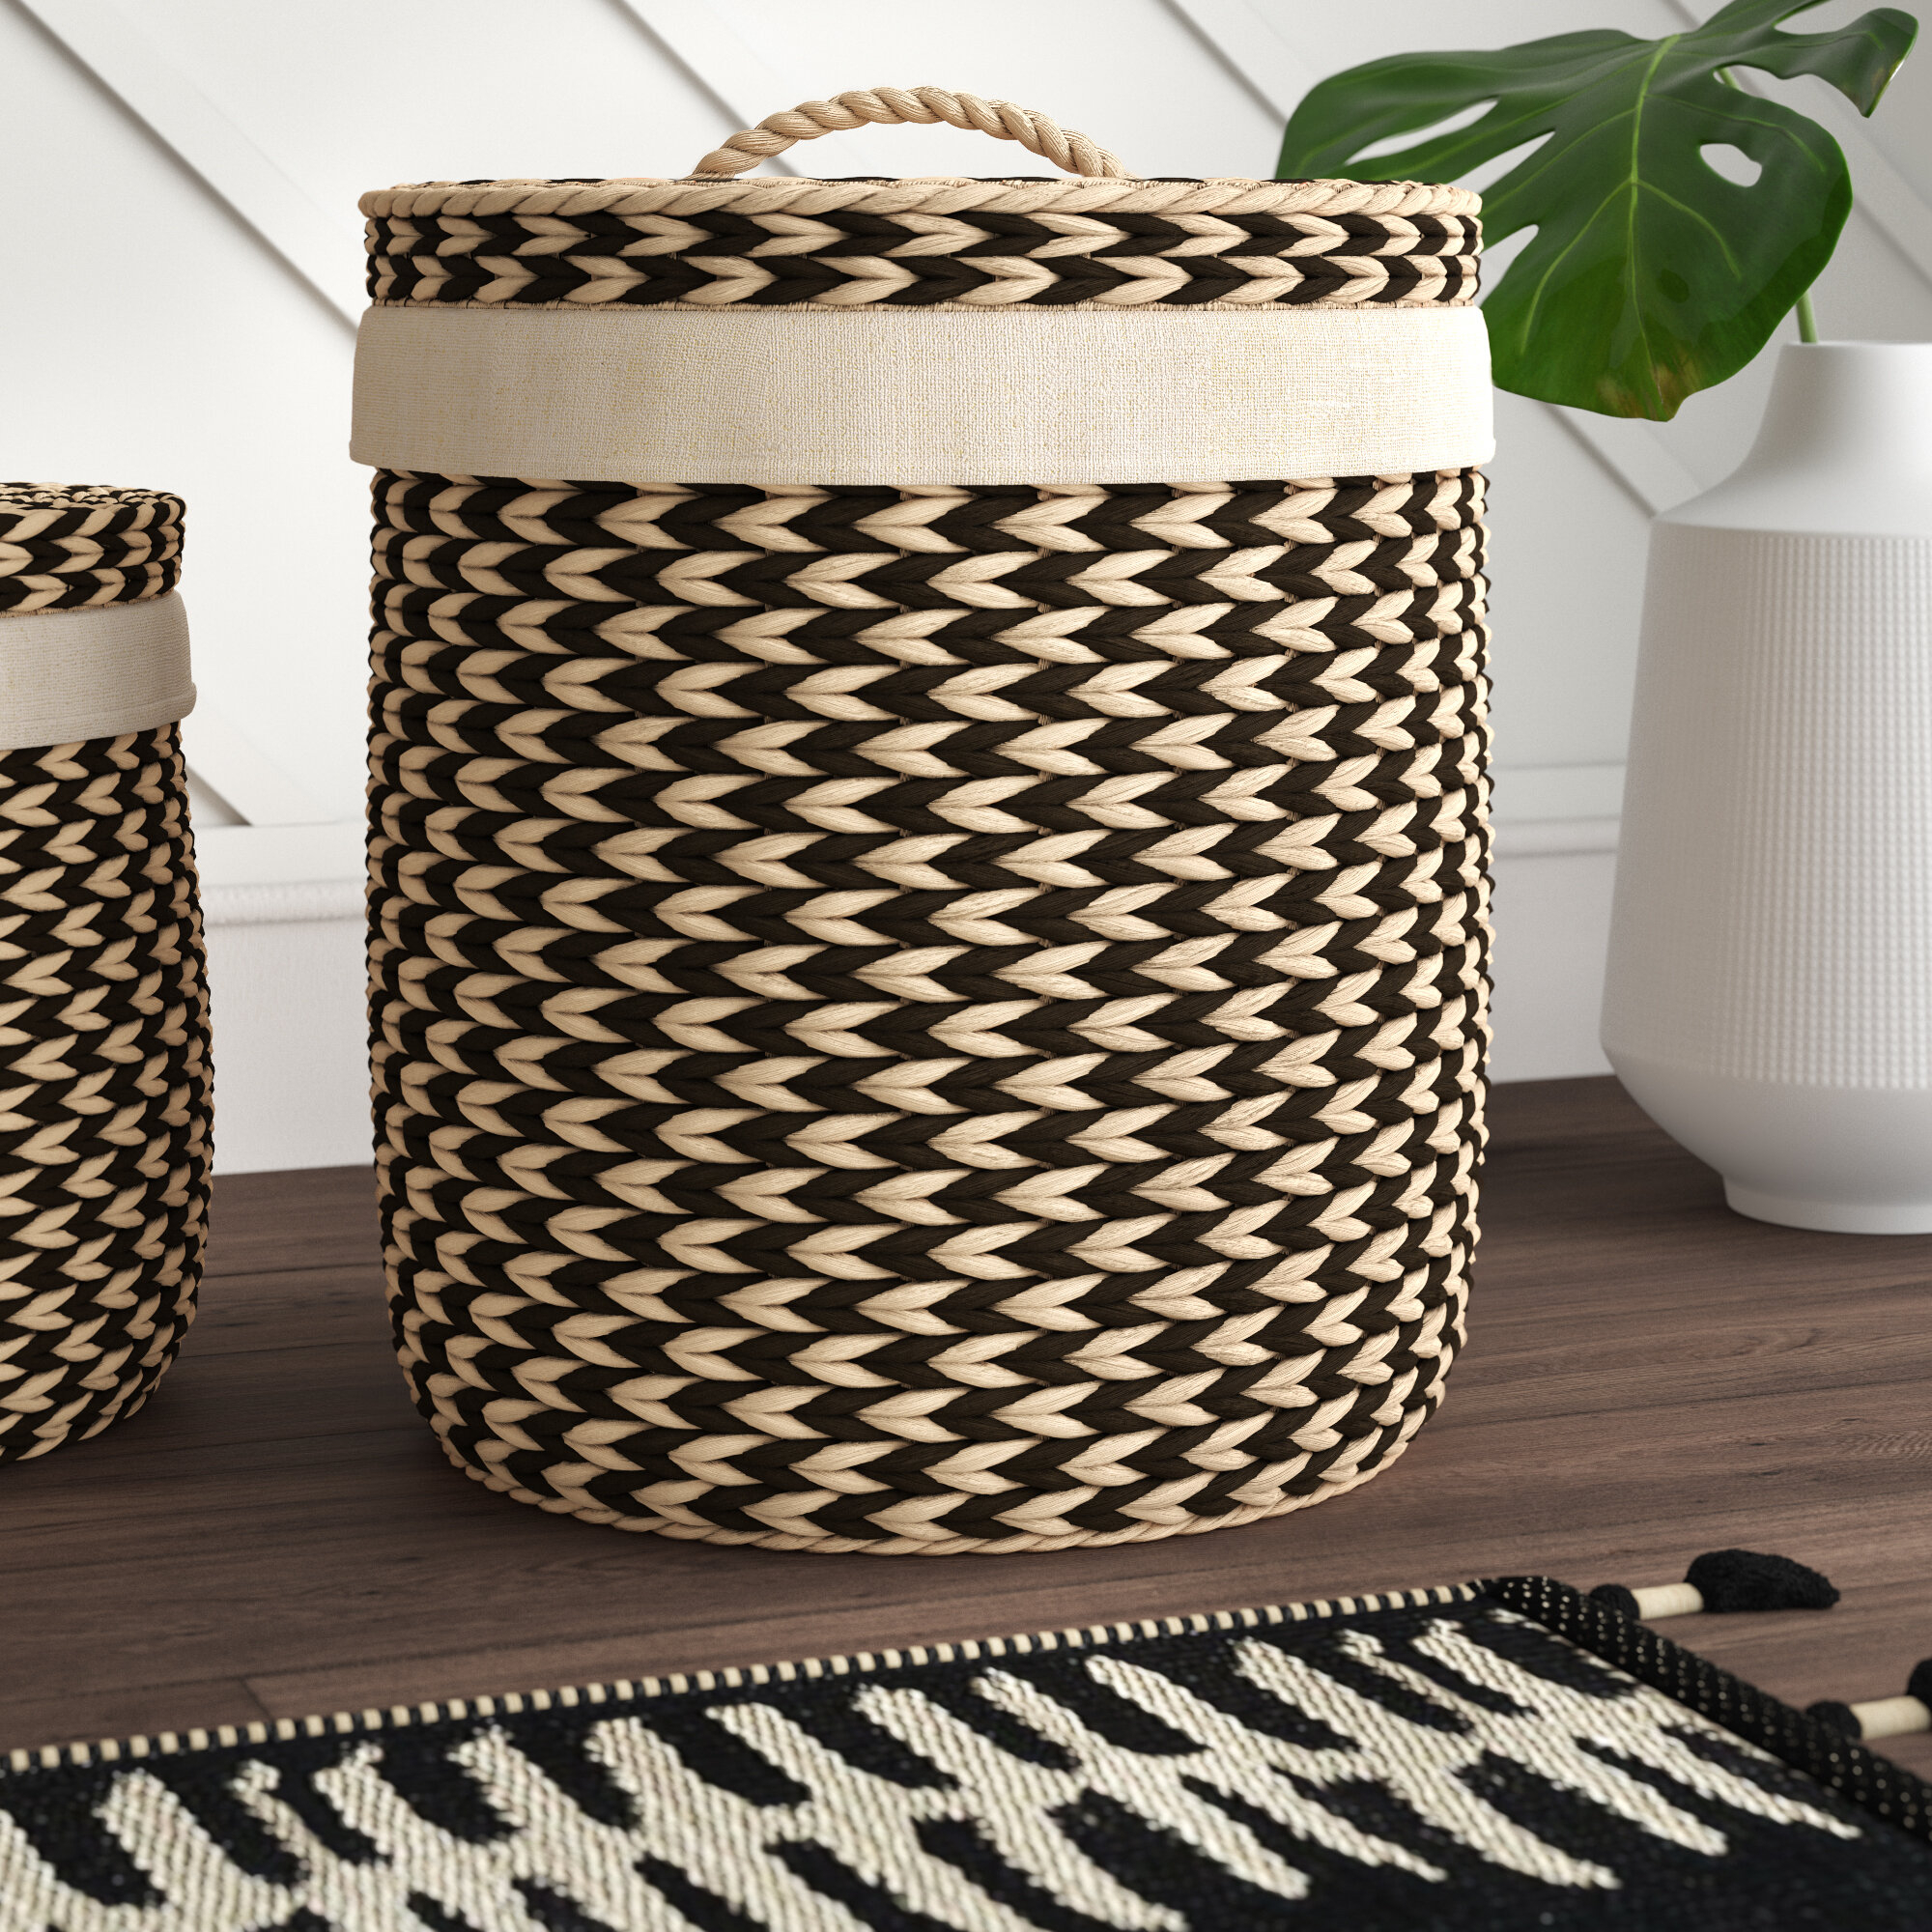 2 Piece Laundry Set In 4 Piece Handwoven Wheel Wall Decor Sets (Photo 25 of 30)